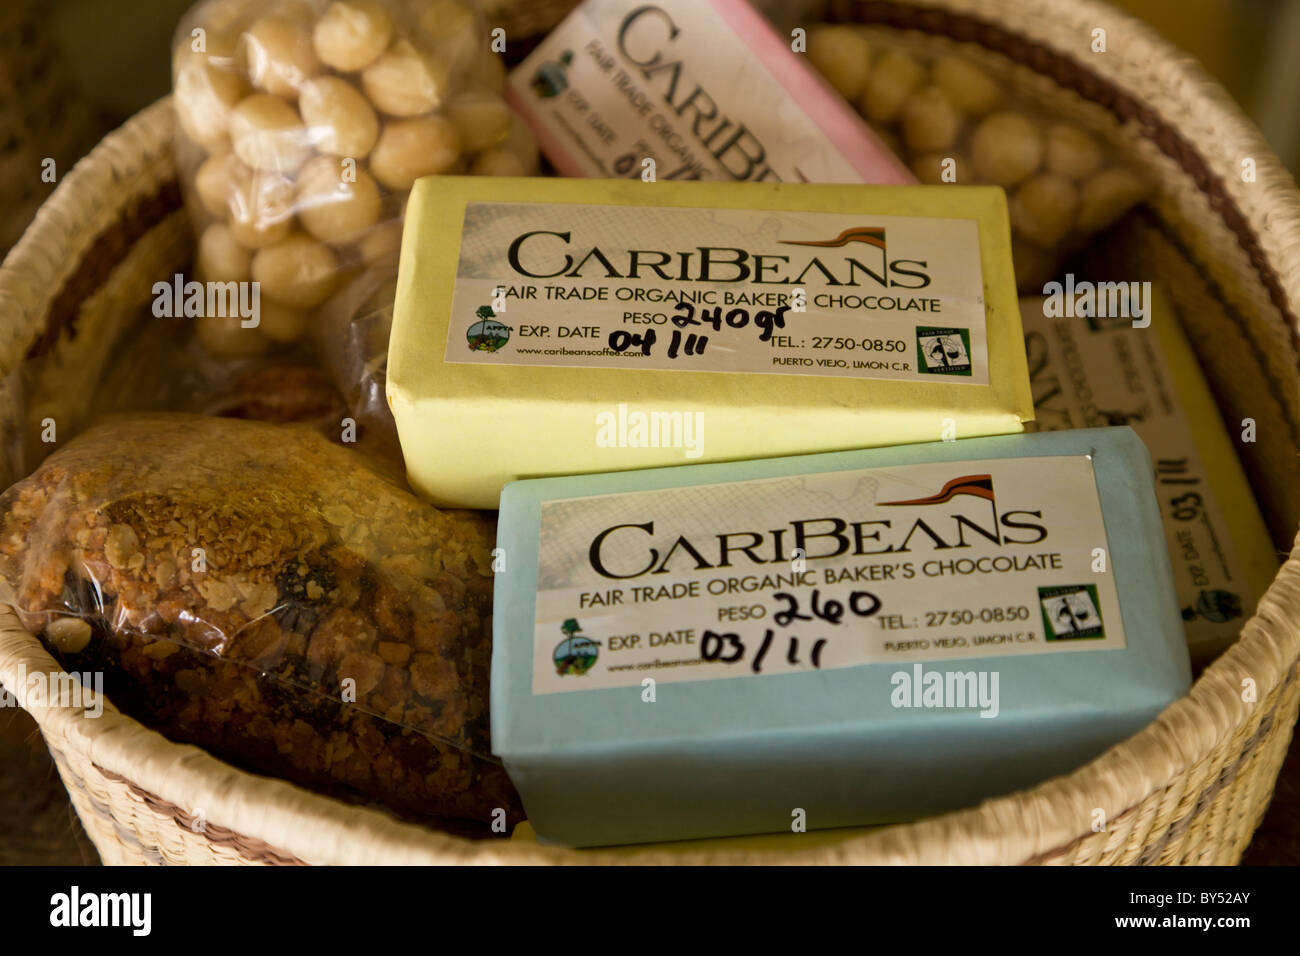 Caribeans fair trade organic chocolate in Puerto Viejo de Talamanca, Costa Rica. - Stock Image